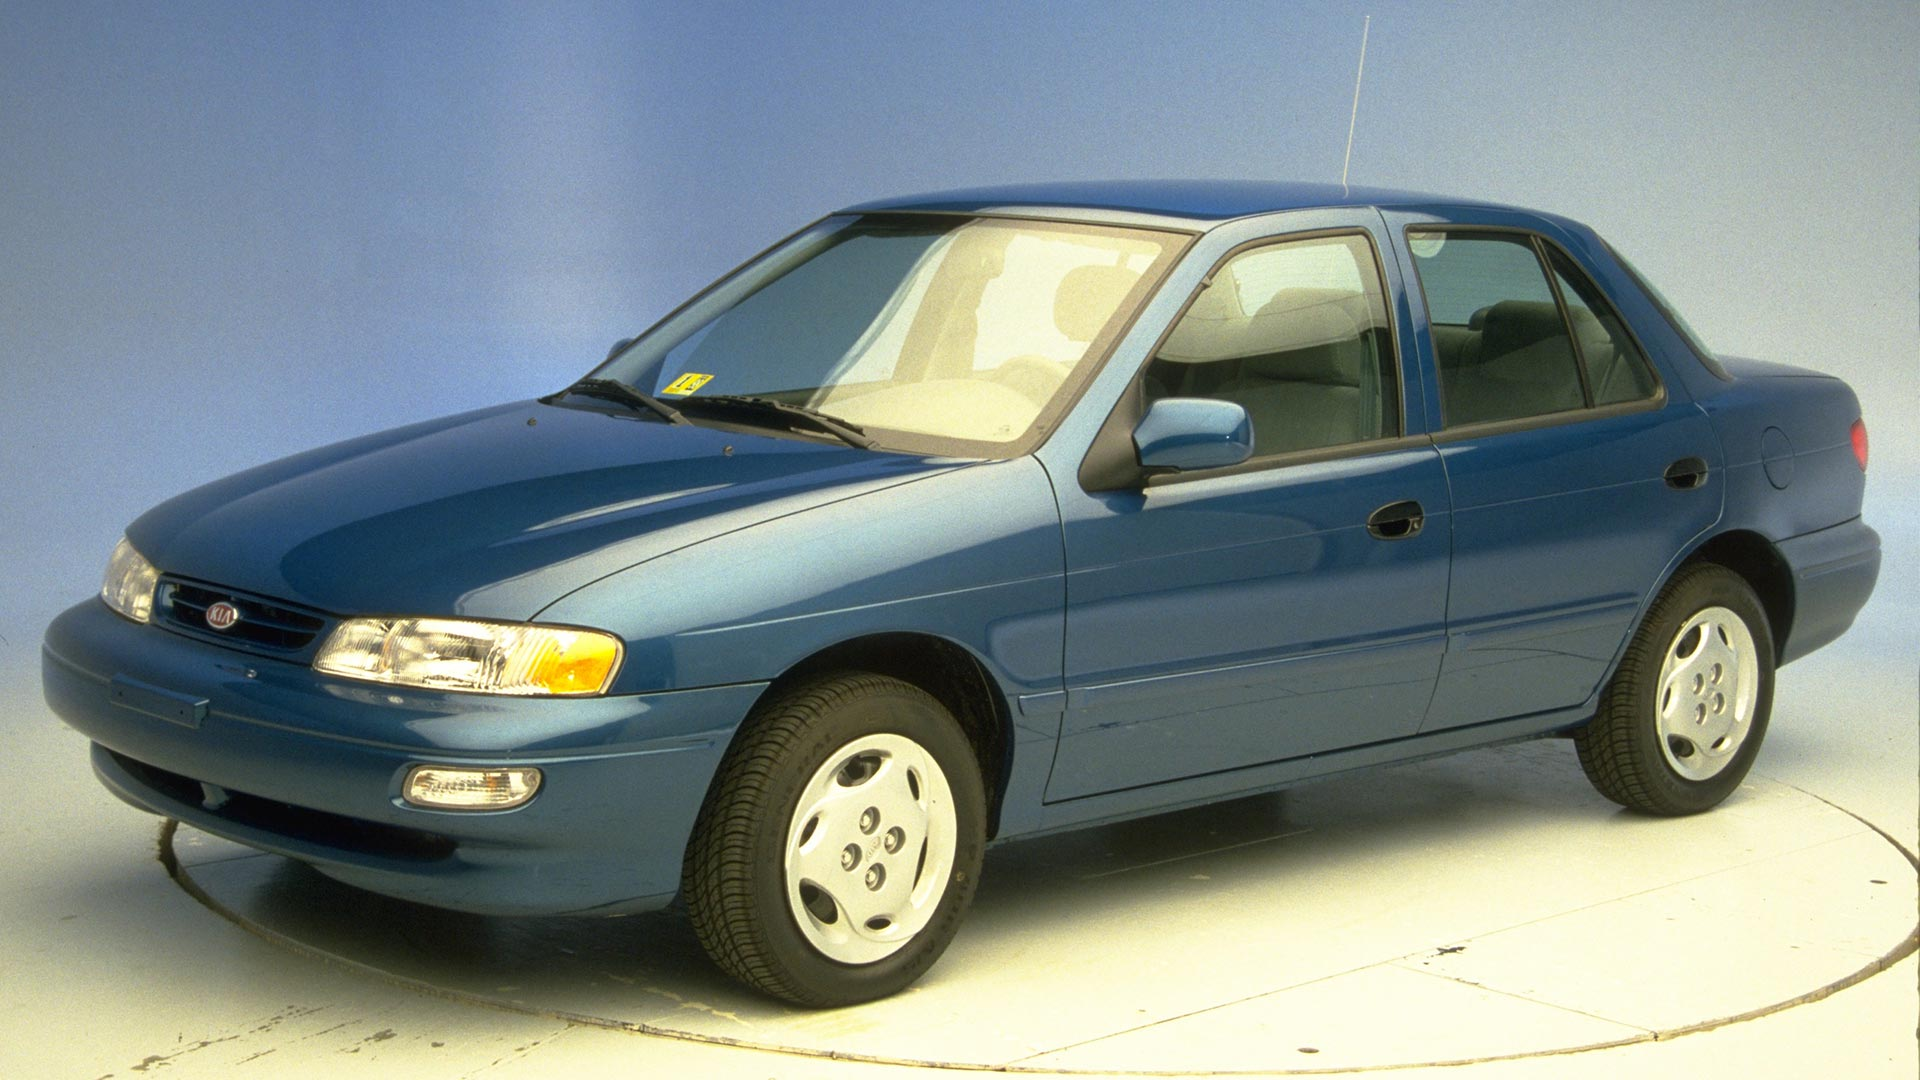 1997 Kia Sephia 4-door sedan